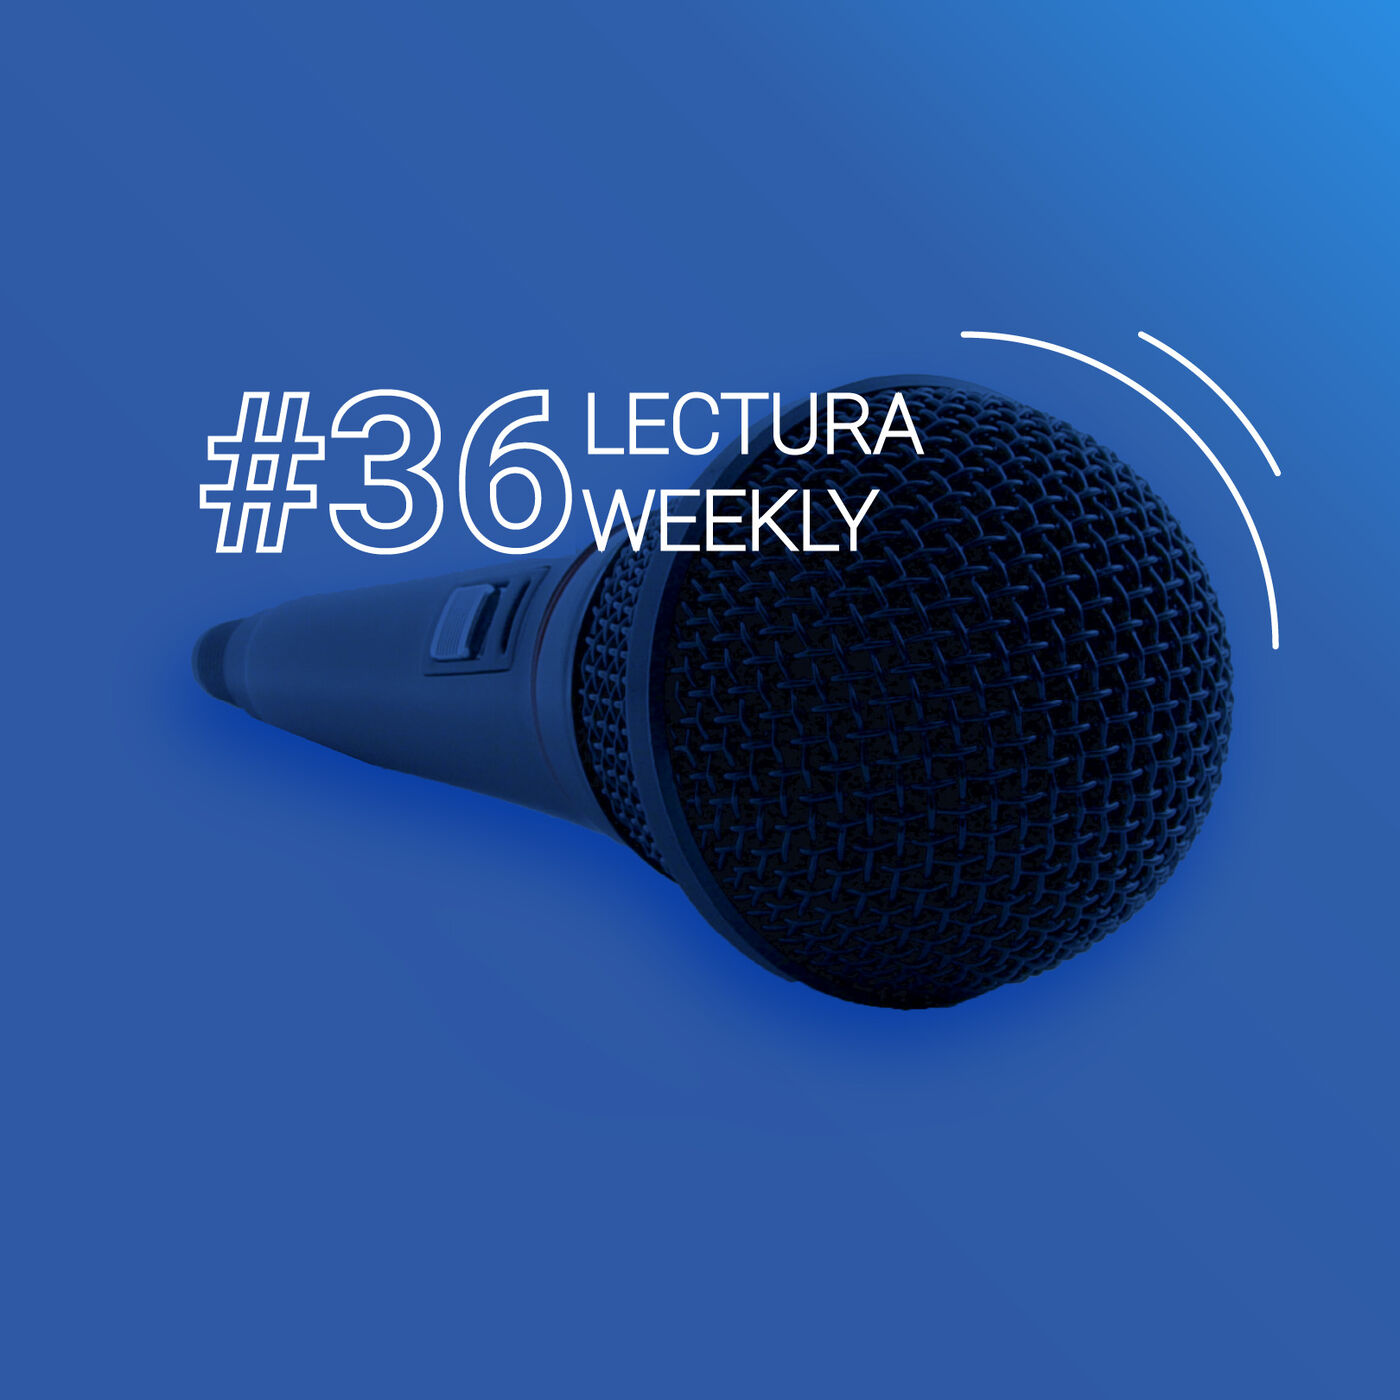 Lectura Weekly Podcasts: Week 36